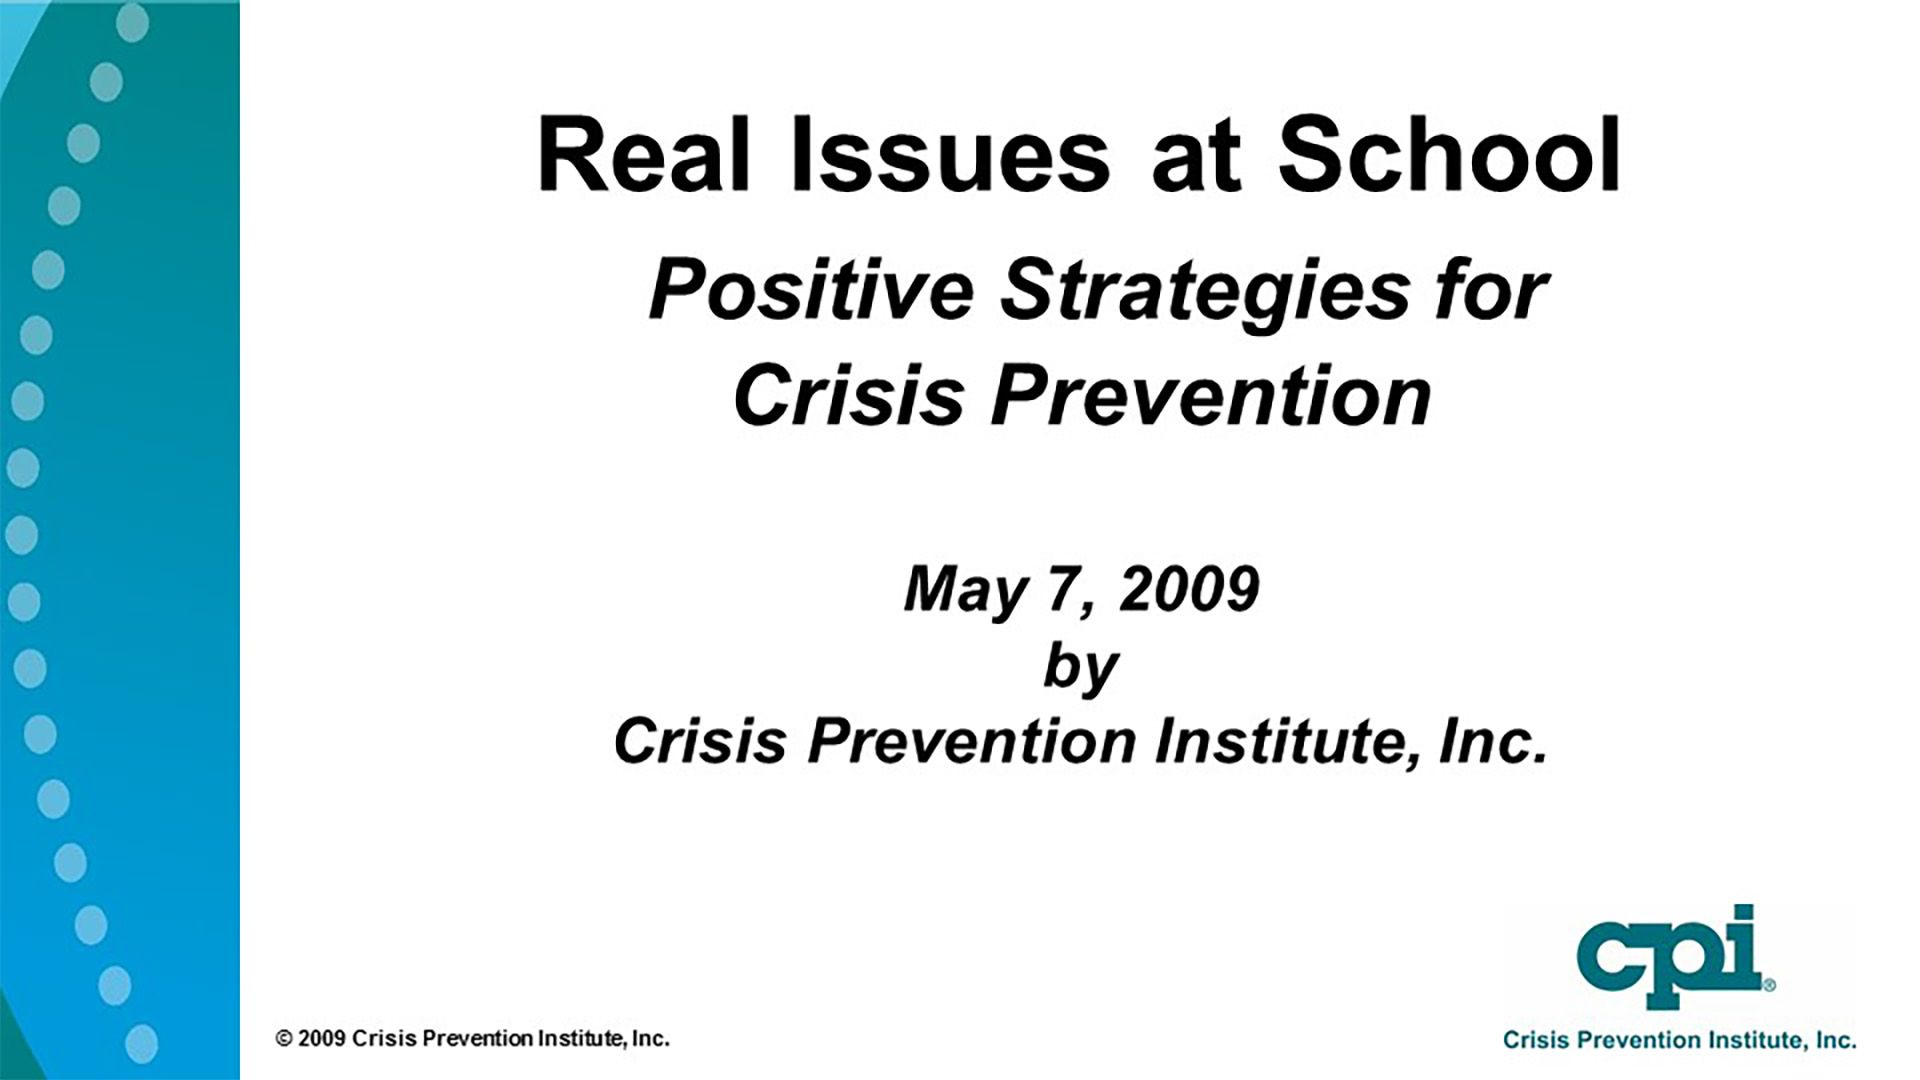 Real Issues at School: Positive Strategies for Crisis Prevention